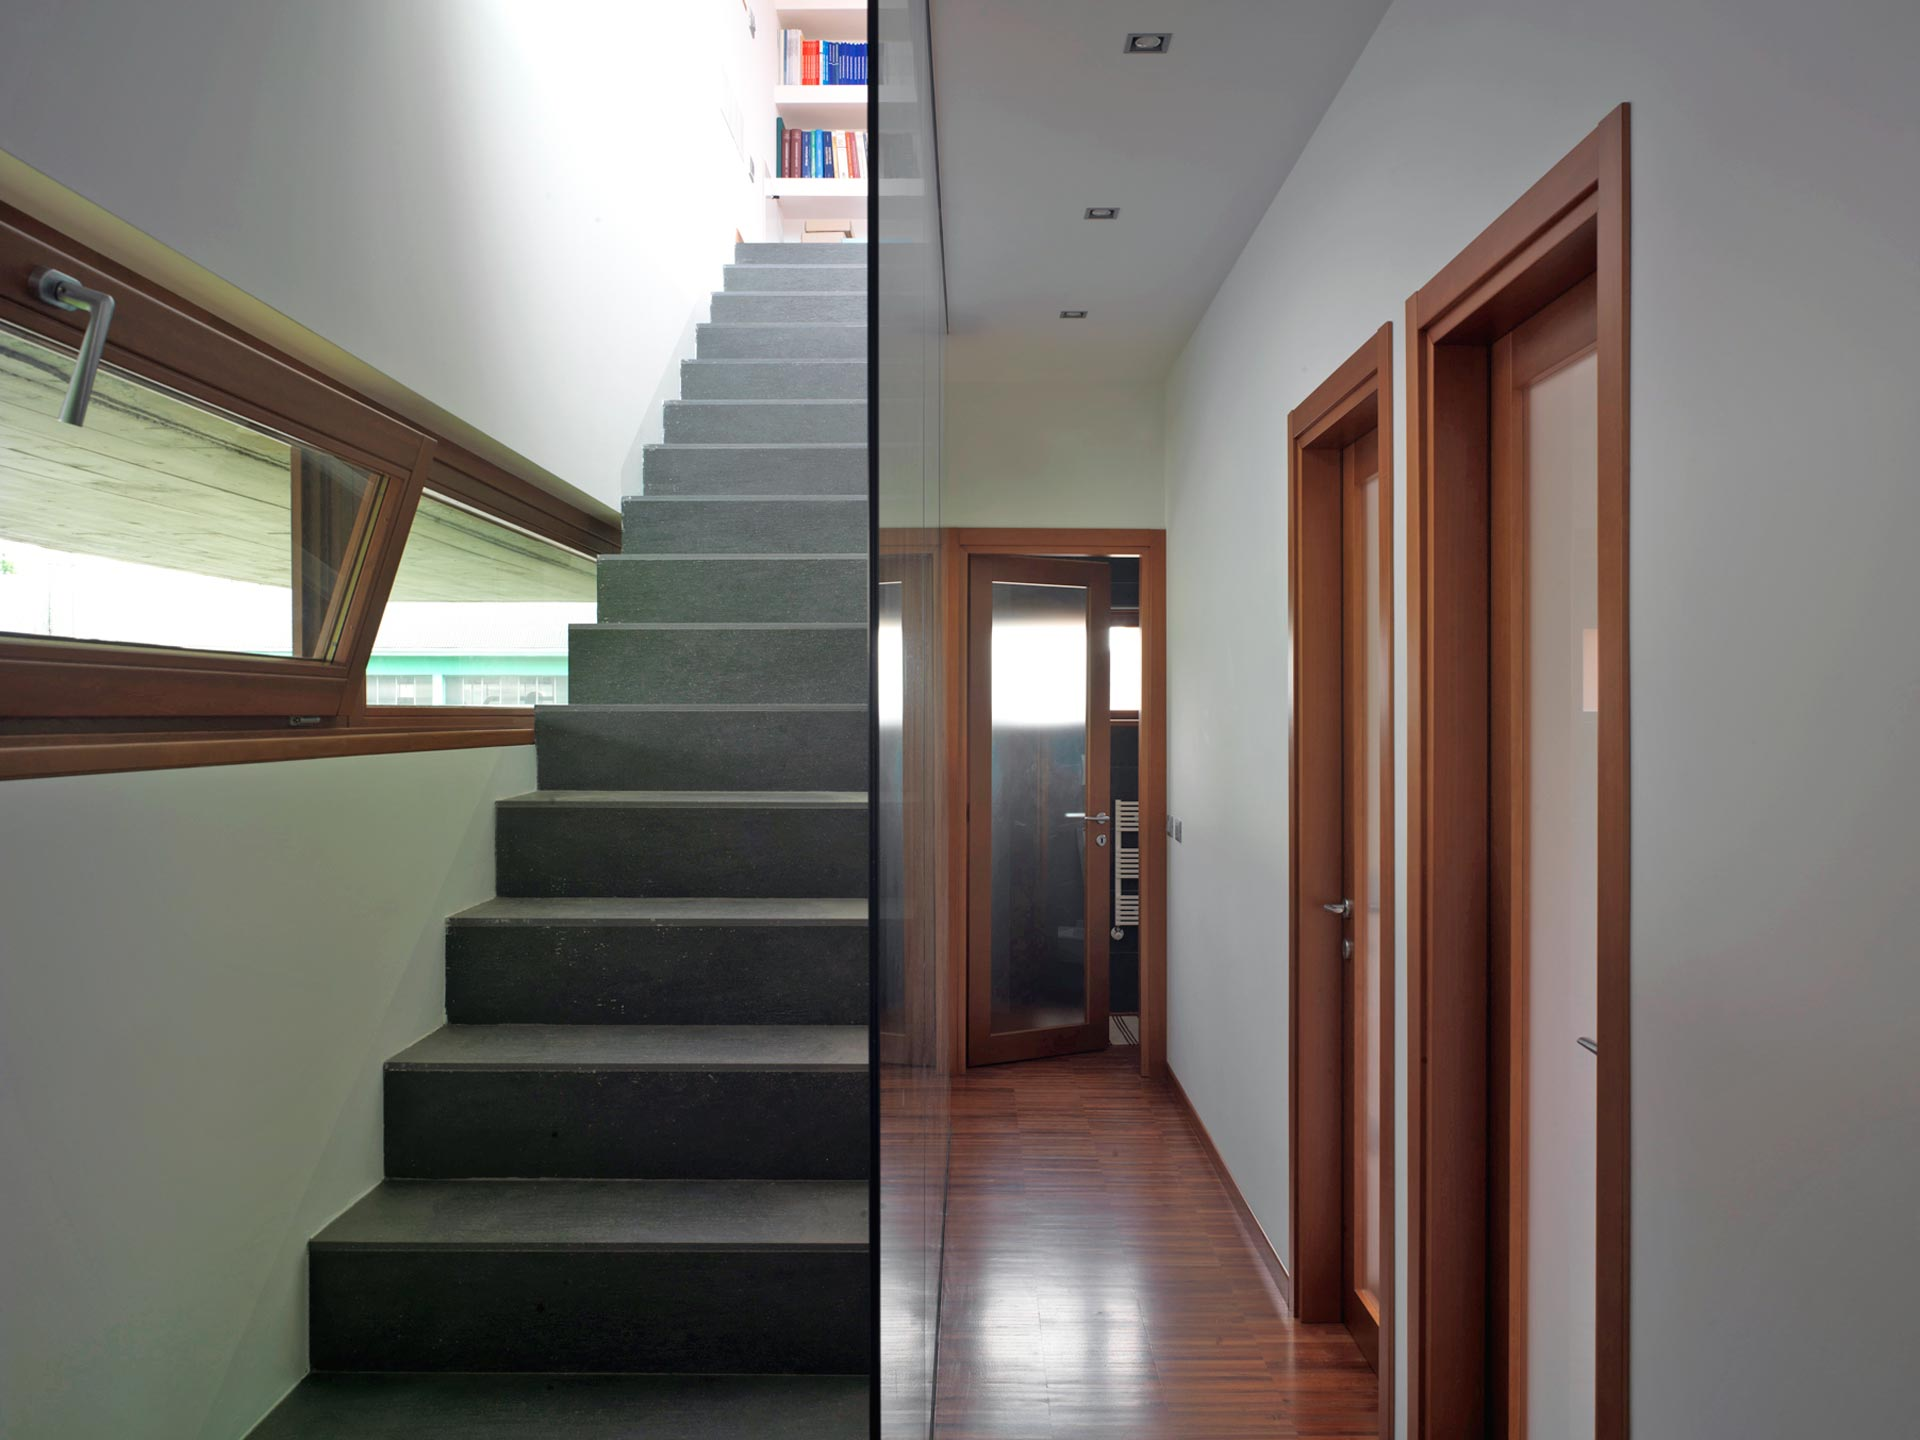 View of a corridor and a staircase with ribbon bottom hung windows